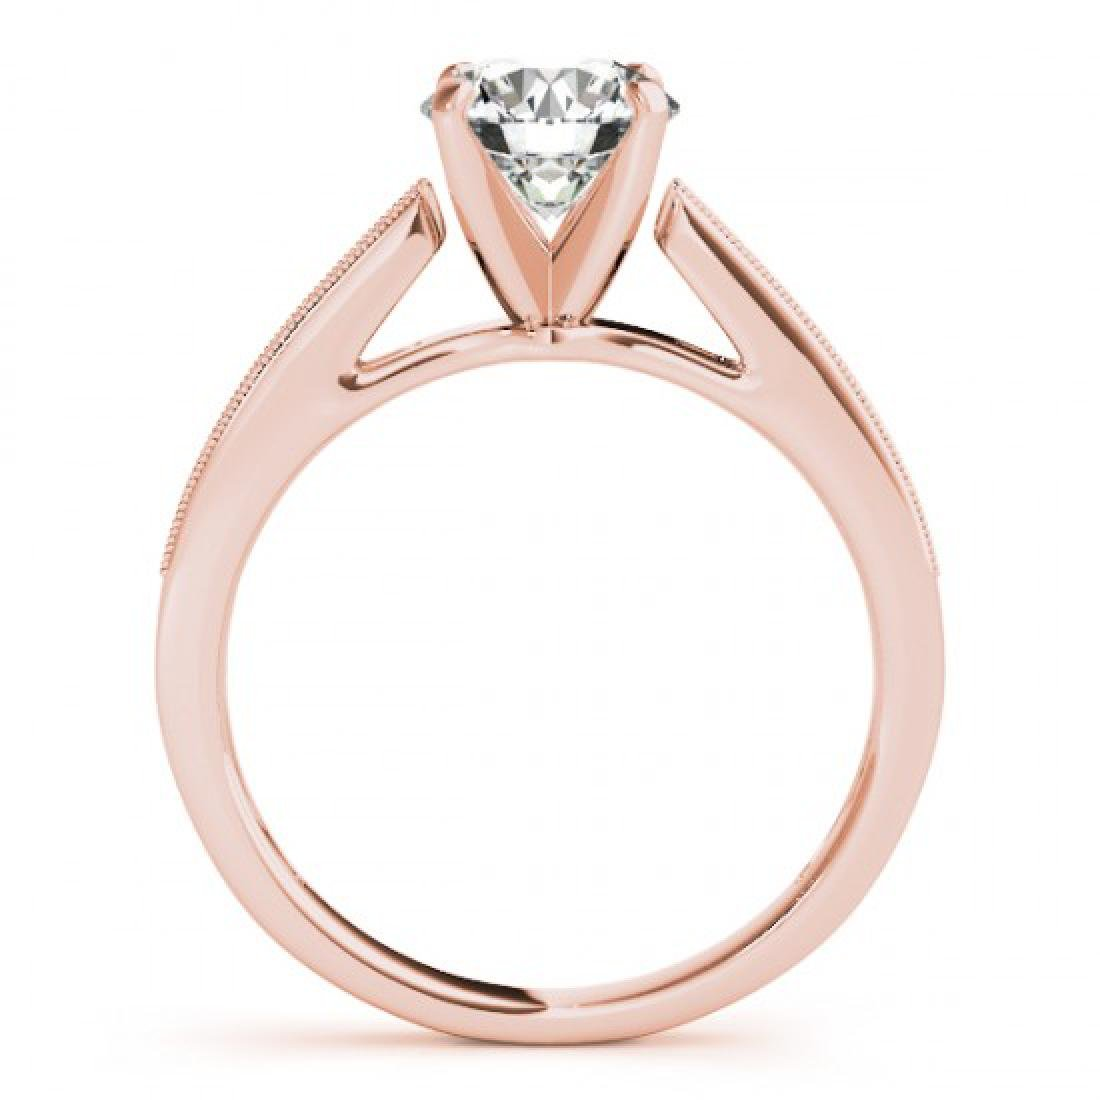 0.7 CTW Certified VS/SI Diamond Solitaire Ring 14K Rose - 2